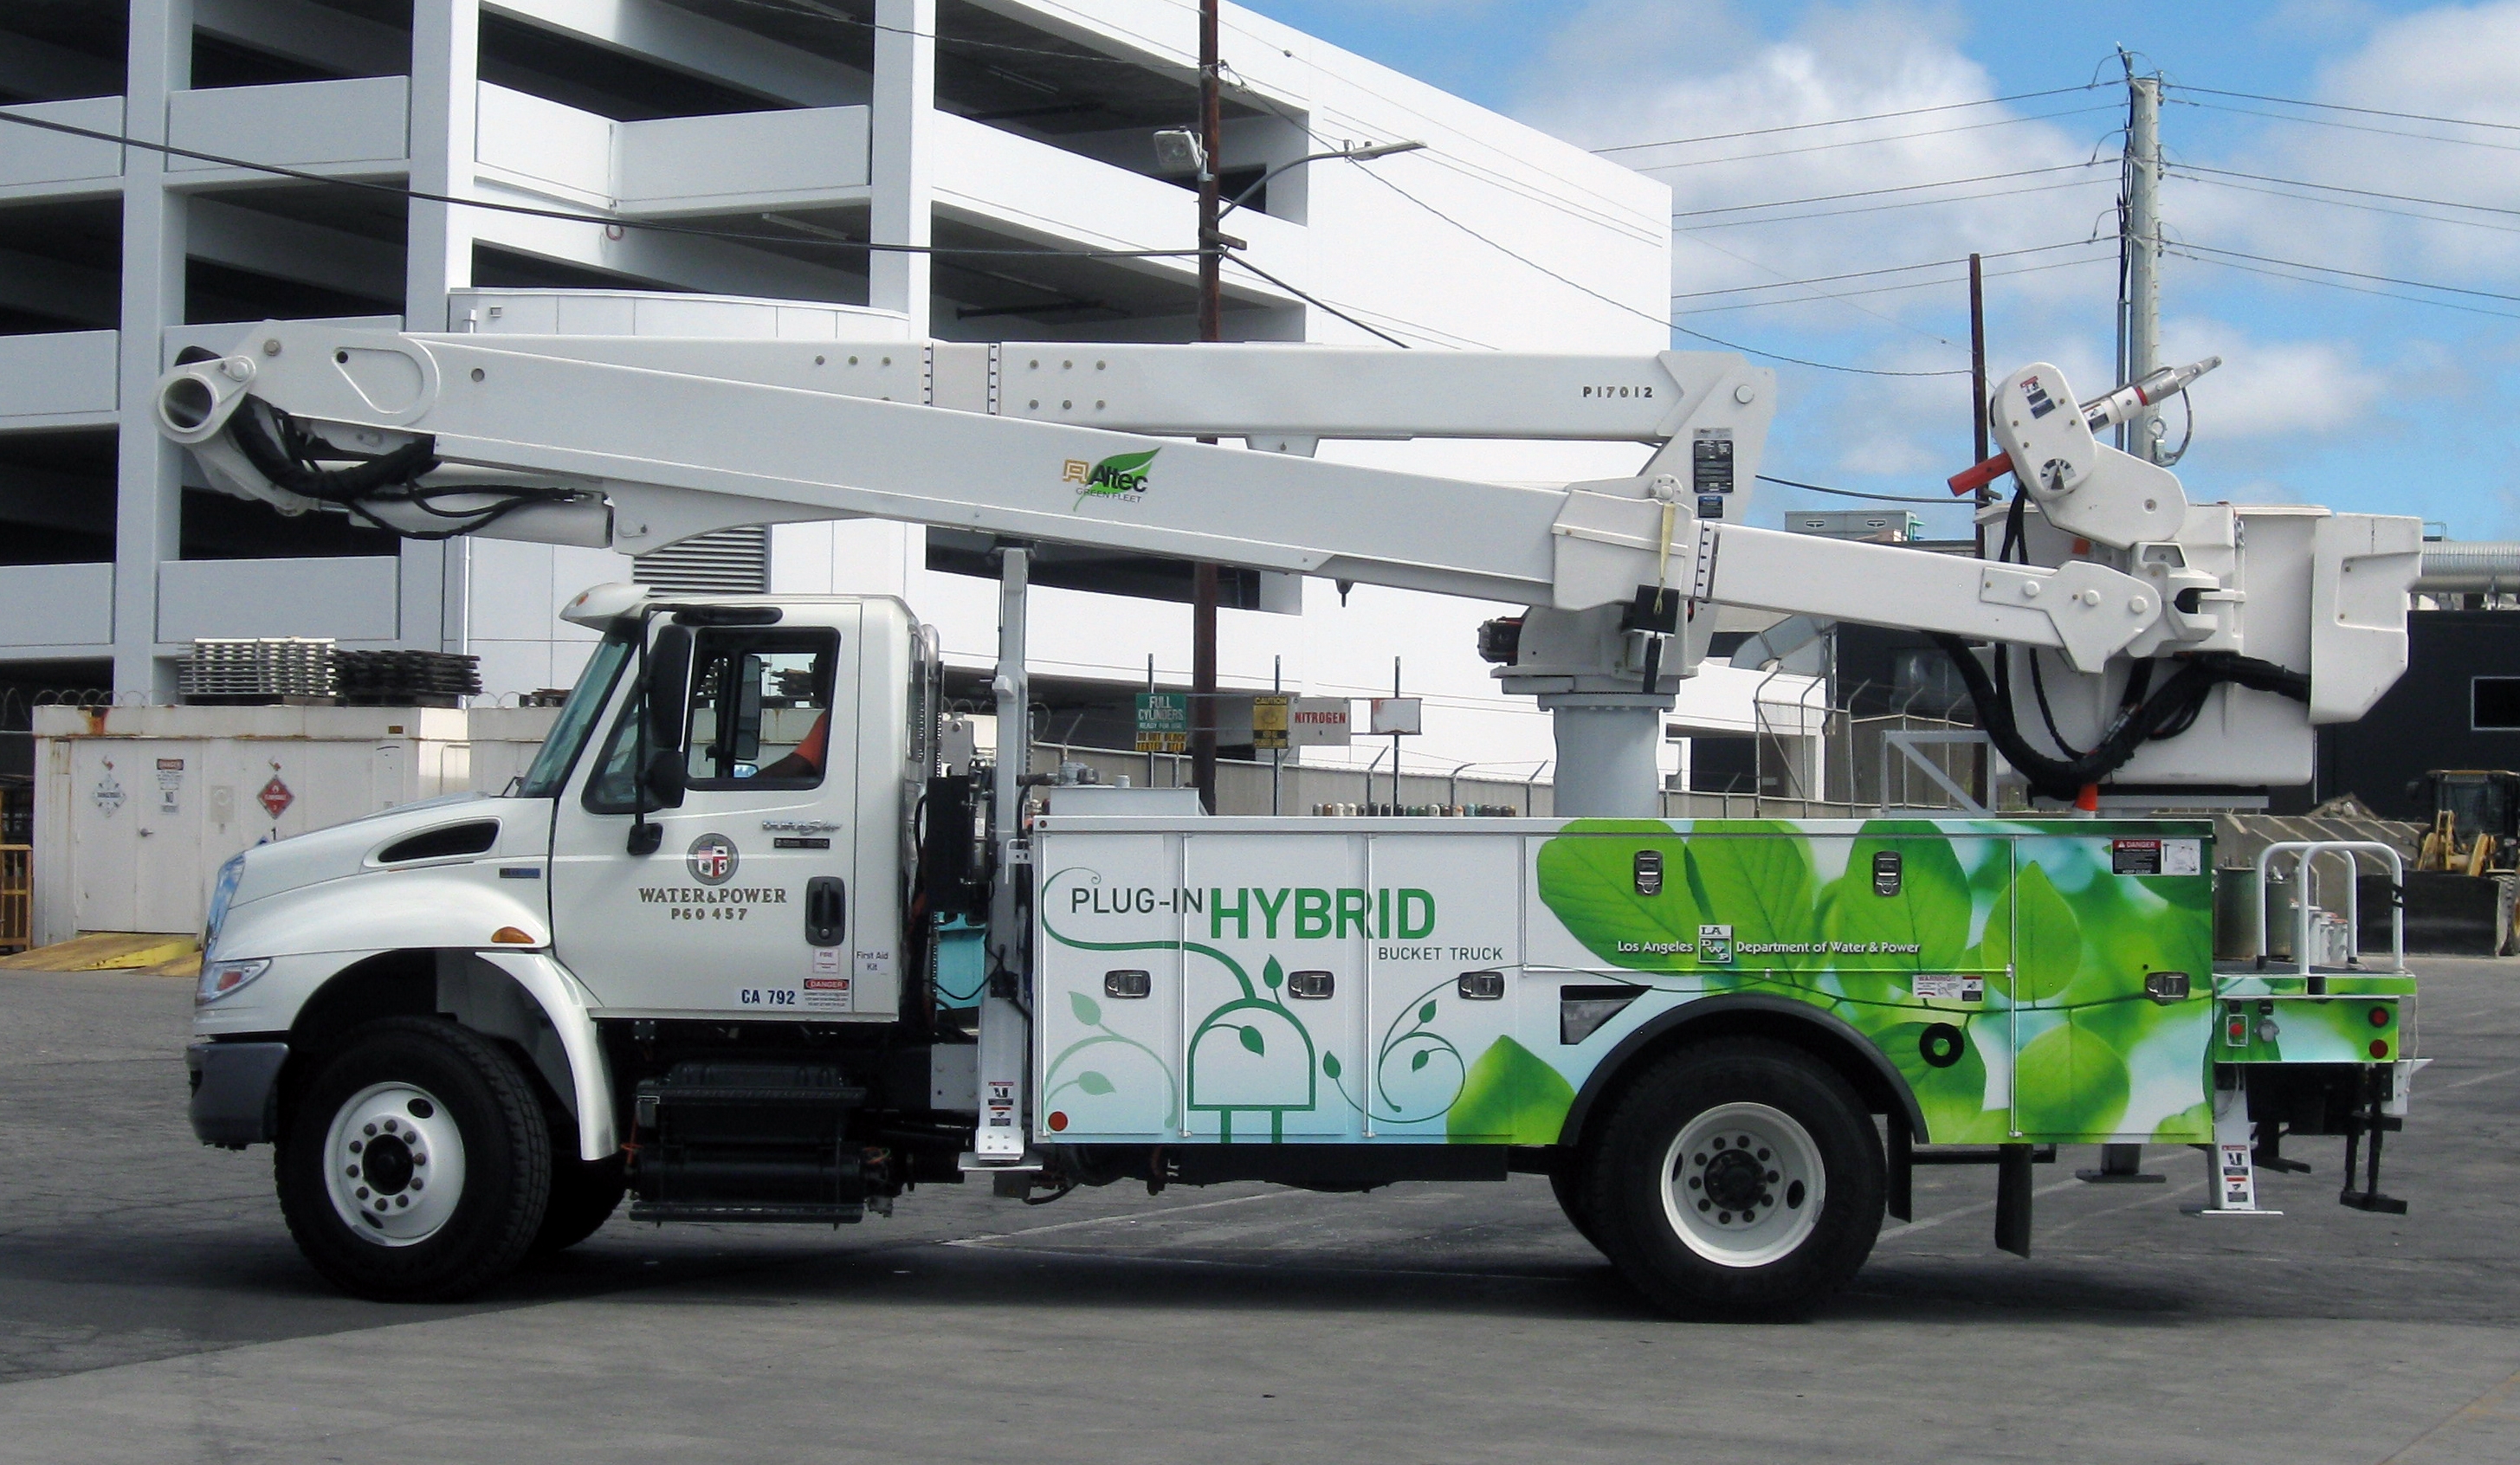 LA Utility Rolls Out Its First Plug-In Electric Bucket Truck